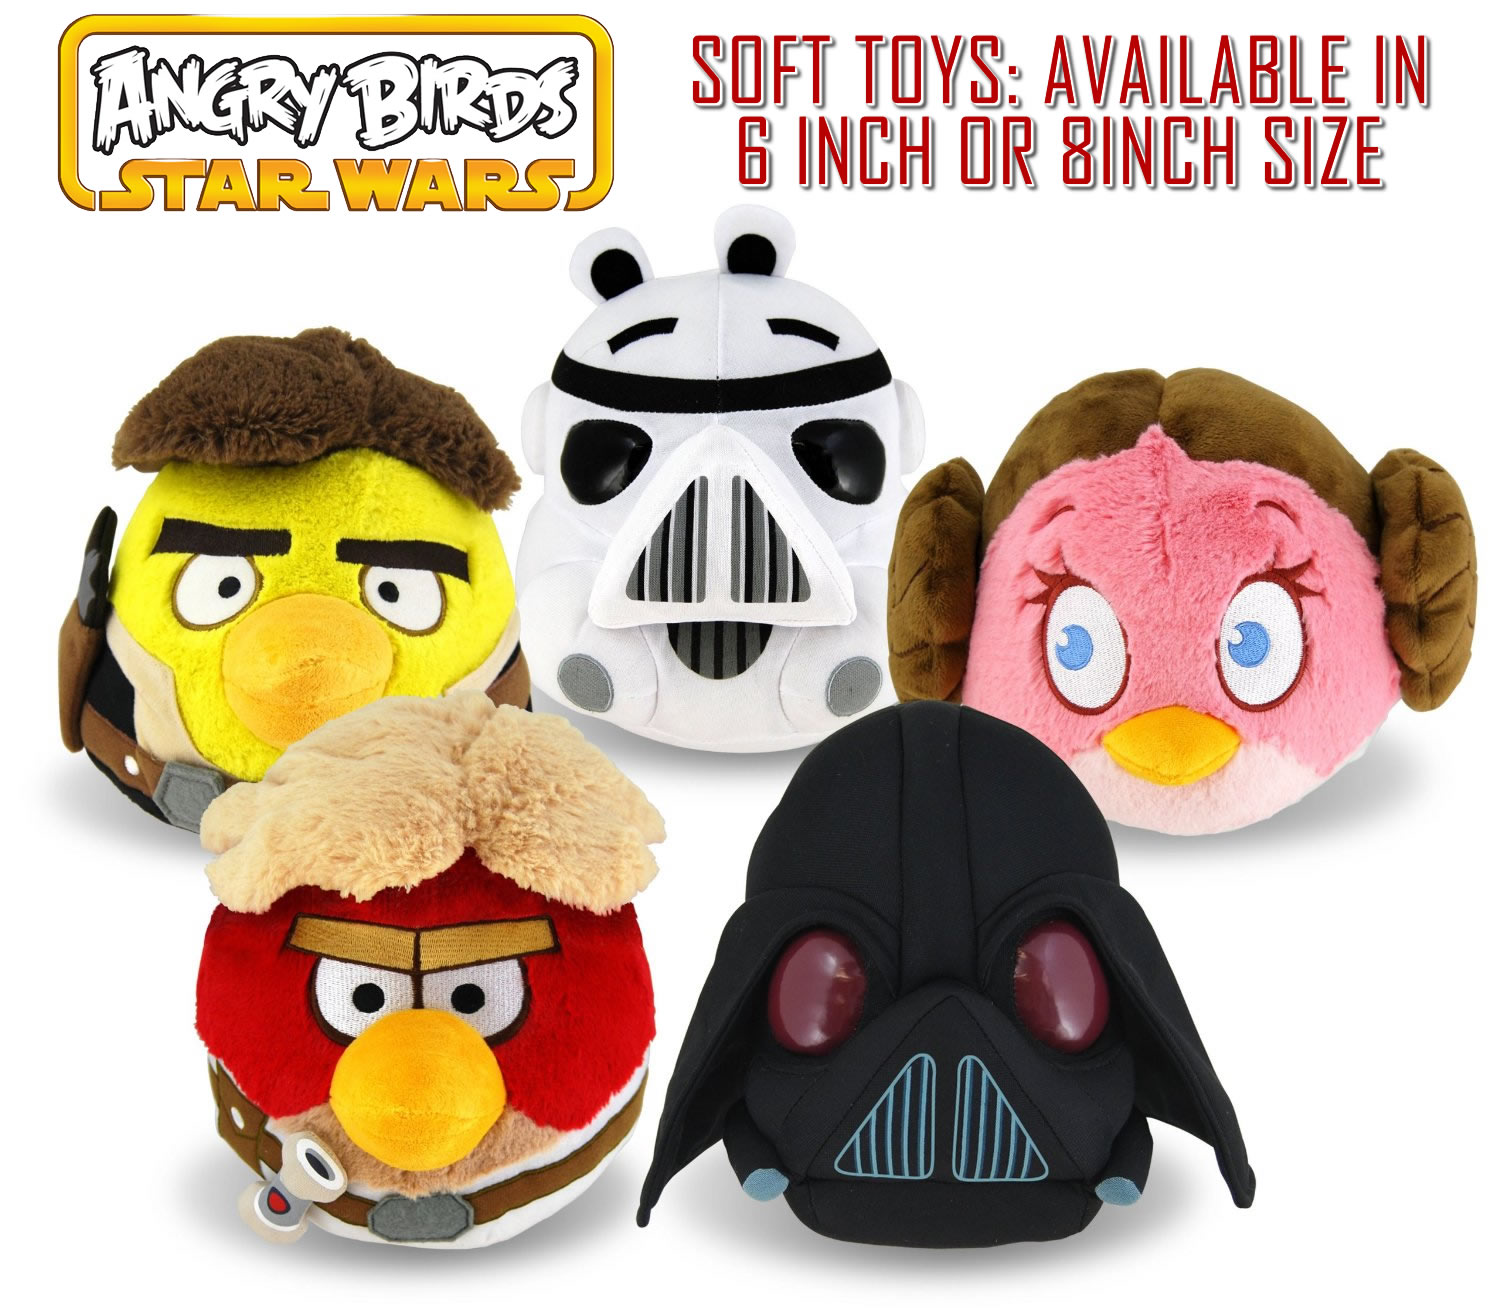 Angry Birds Star Wars 6 or 8 Inch Plush Soft Toy All Characters